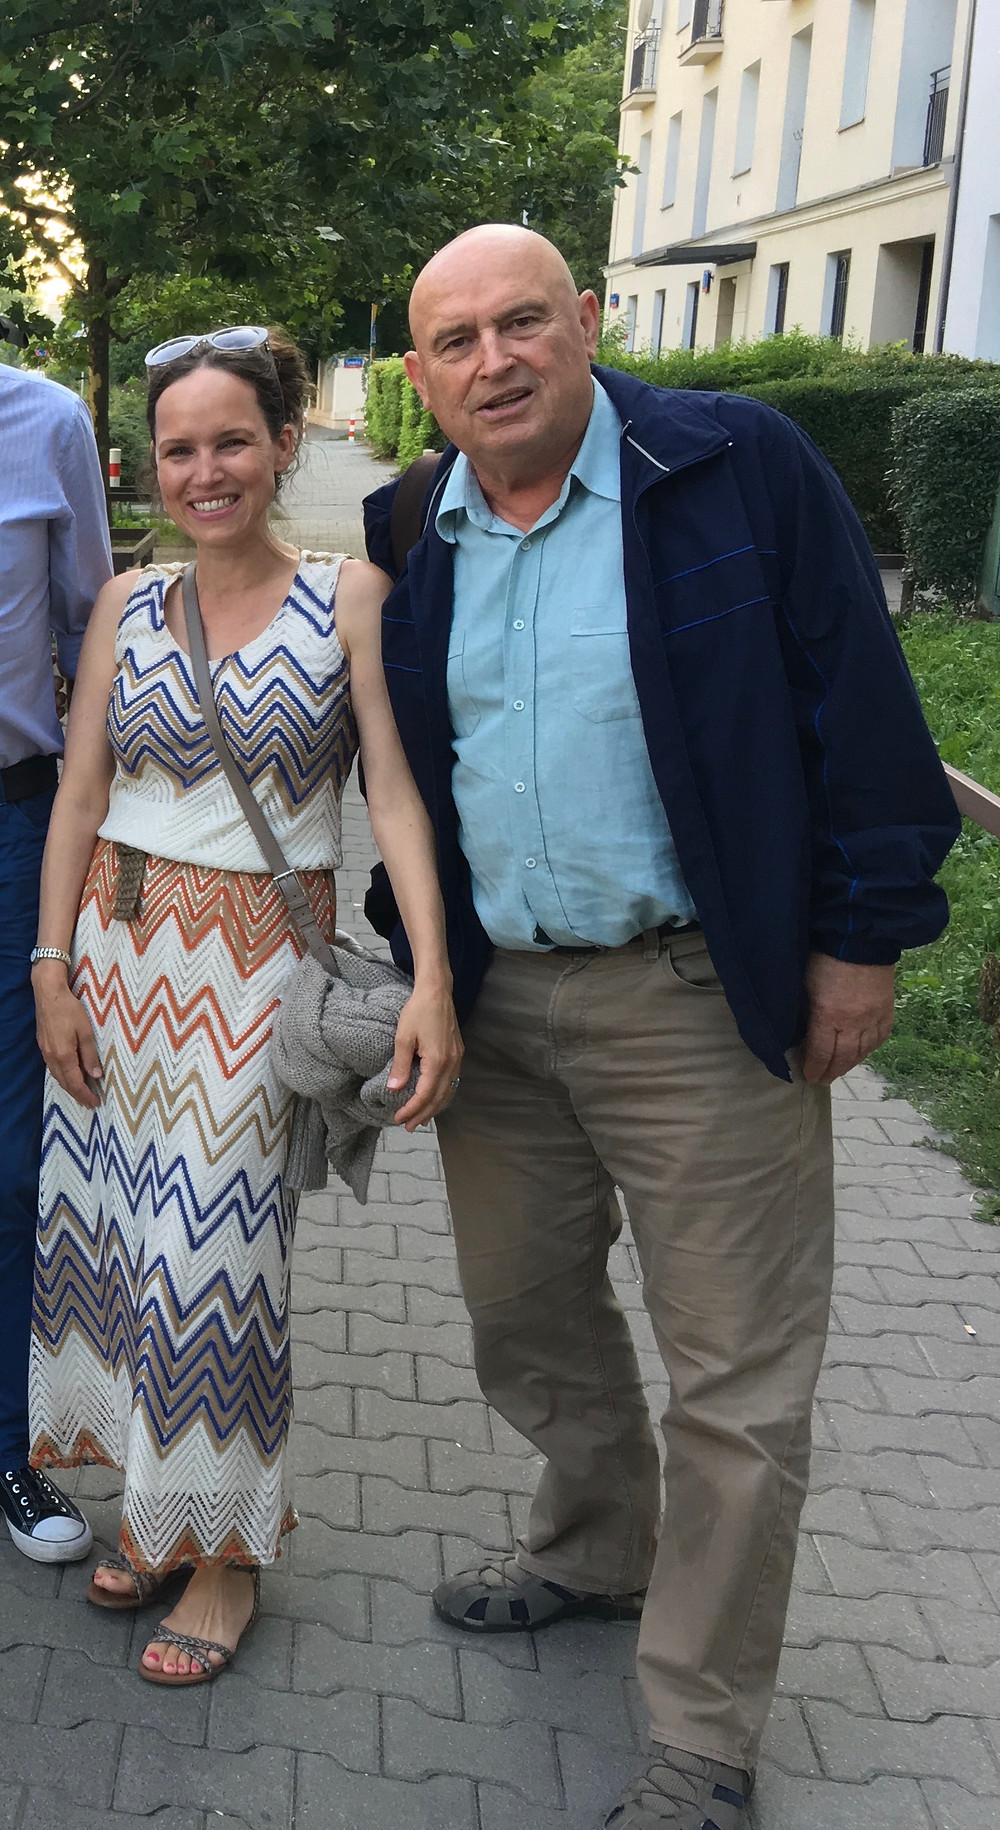 me & daddy in Poland